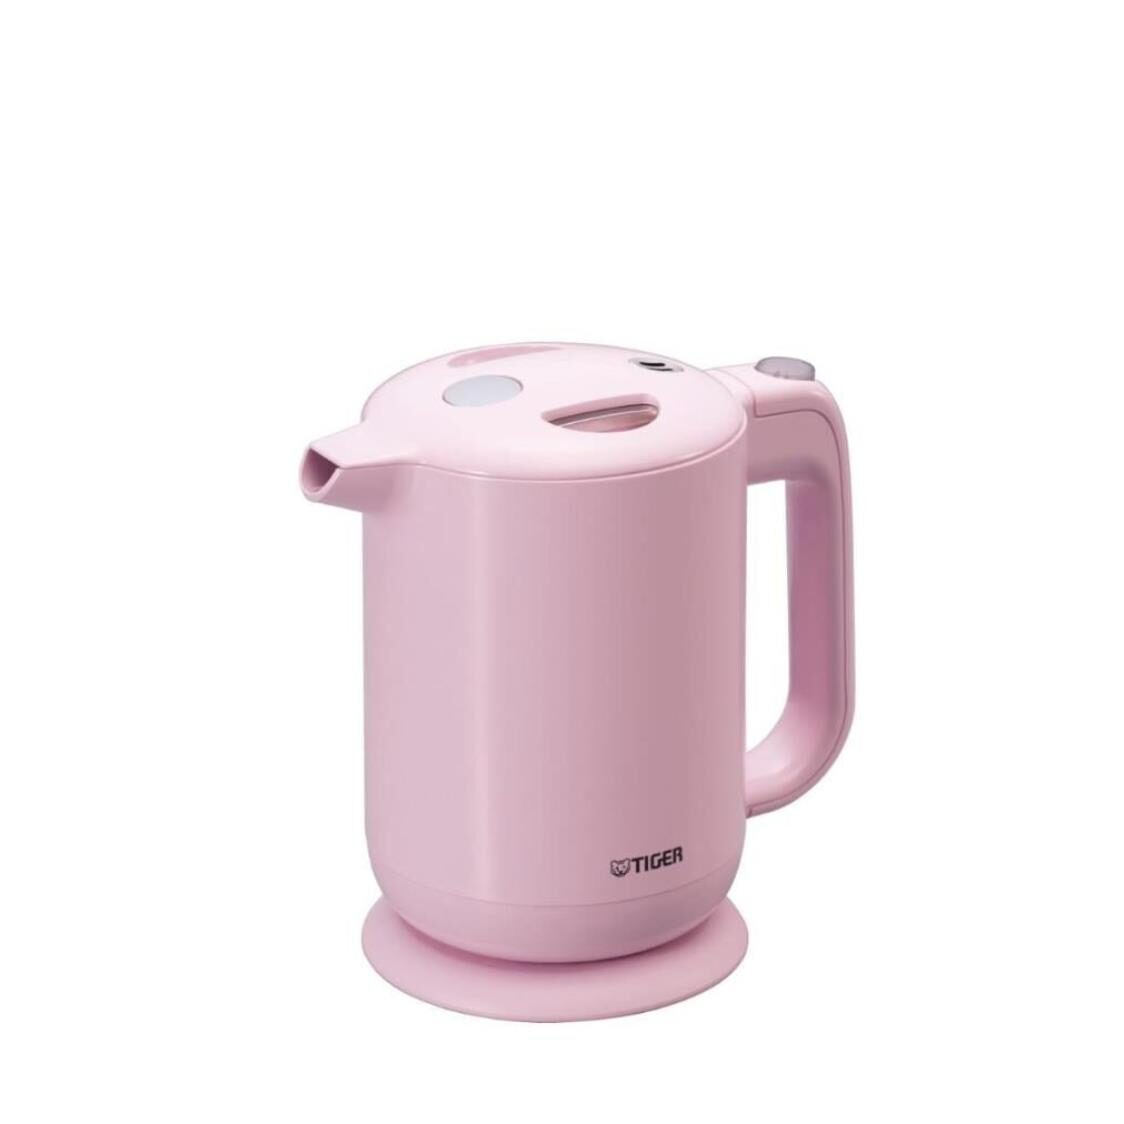 Tiger Electric Kettle Pink 1L PFY-A10S